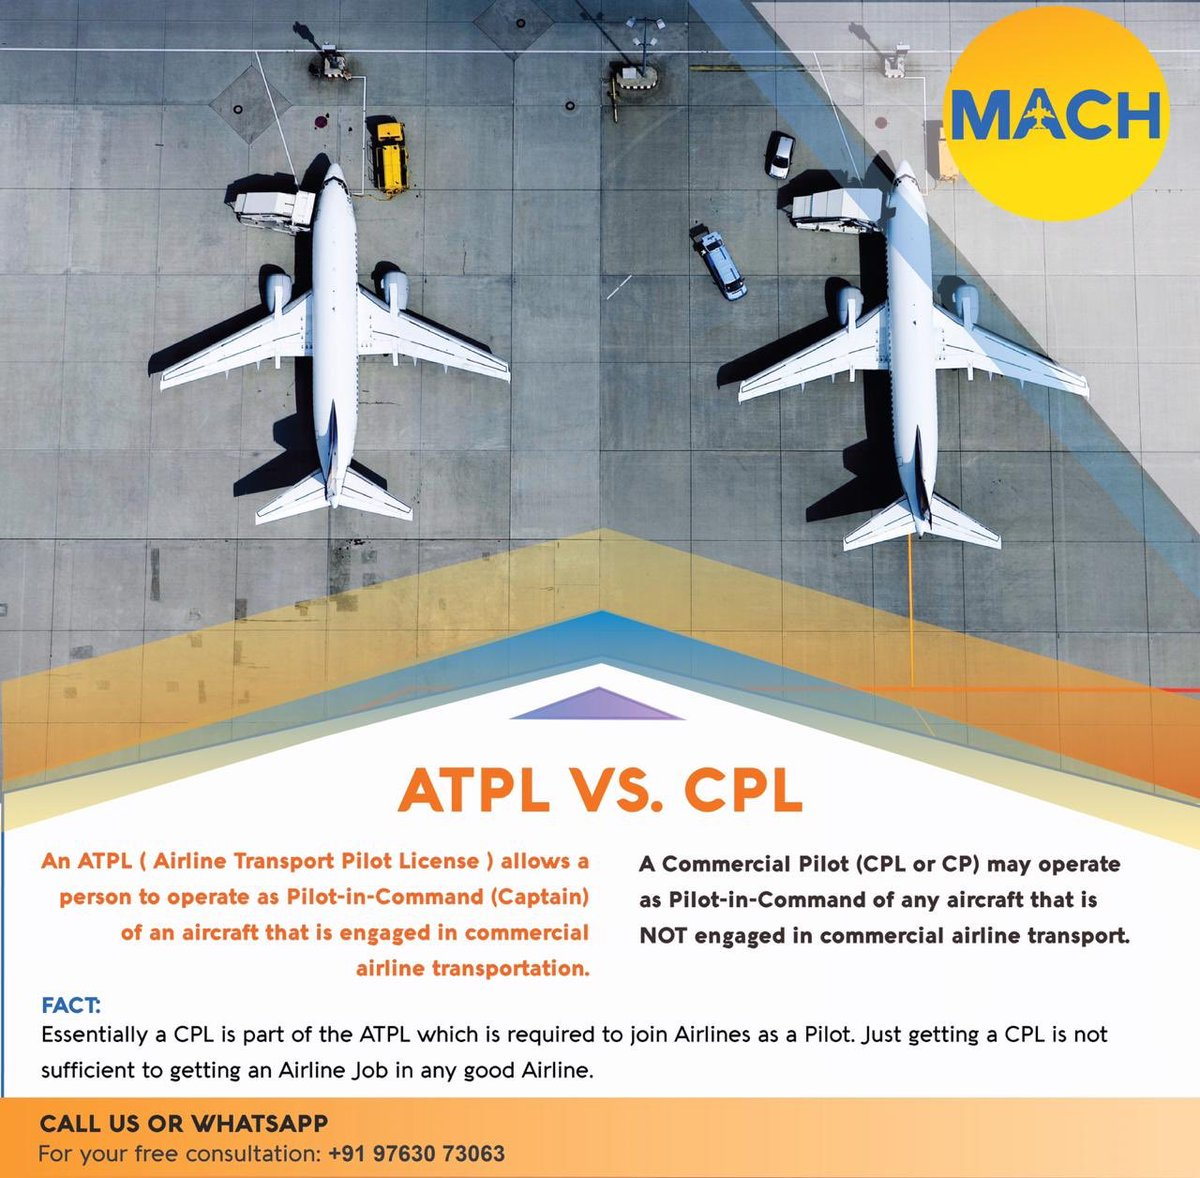 EMInIAfVAAAaqBA - We, Mach Aviation Consultancy aim to help candidates all over India to fulfill their dream of becoming a Pilot with International ICAOEASA license from our official affiliated flight schools in Europe.Contact us to get in touch to explore the whole new world of aviation.